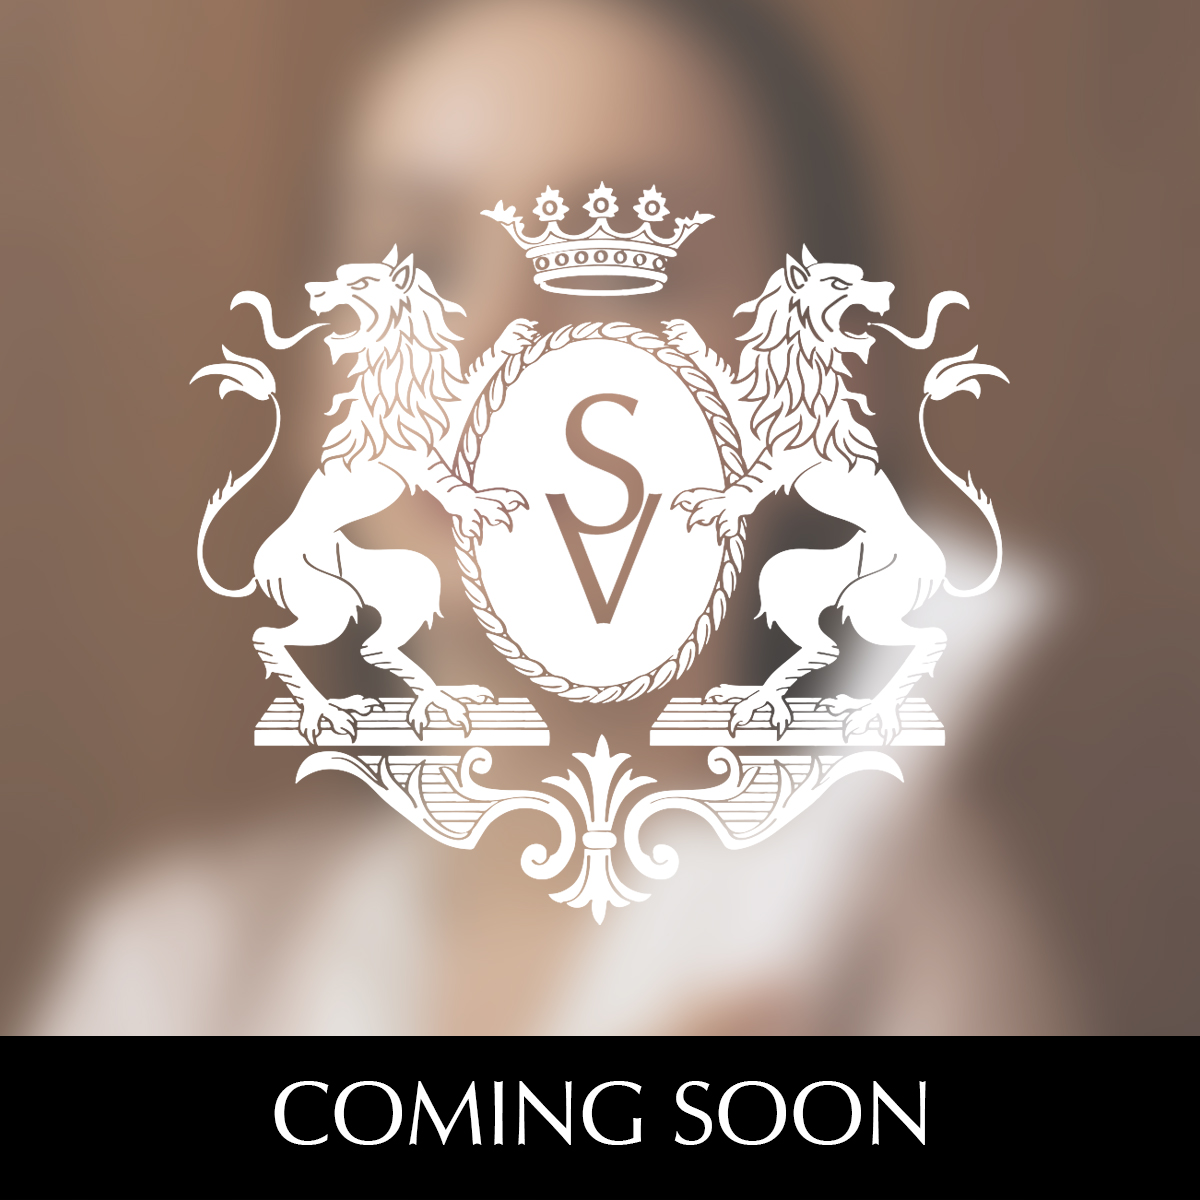 Coming soon. Watch this space.